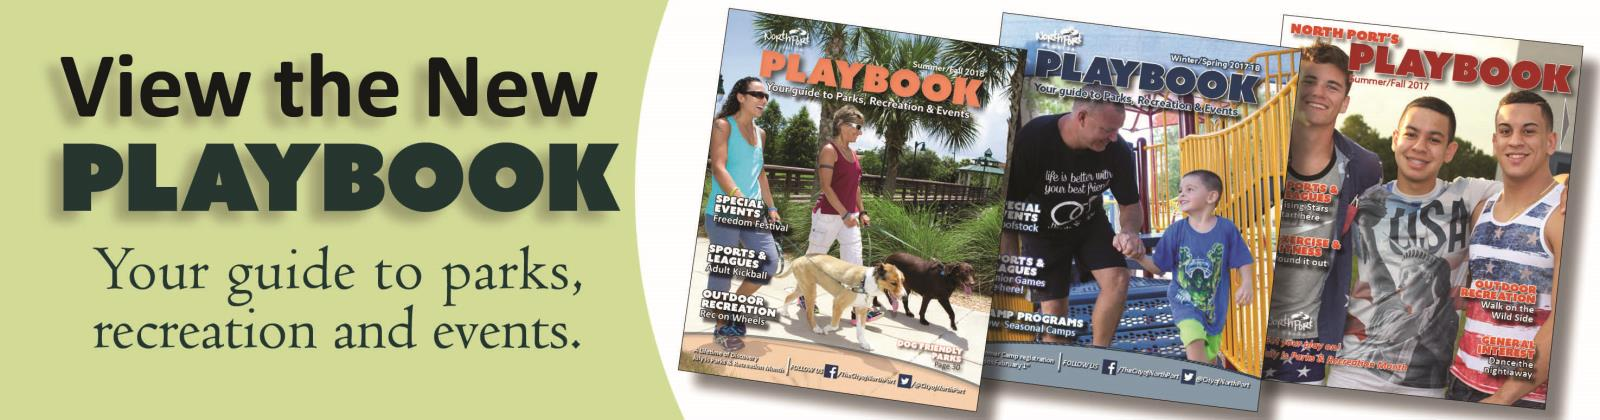 WebBanner-Playbook